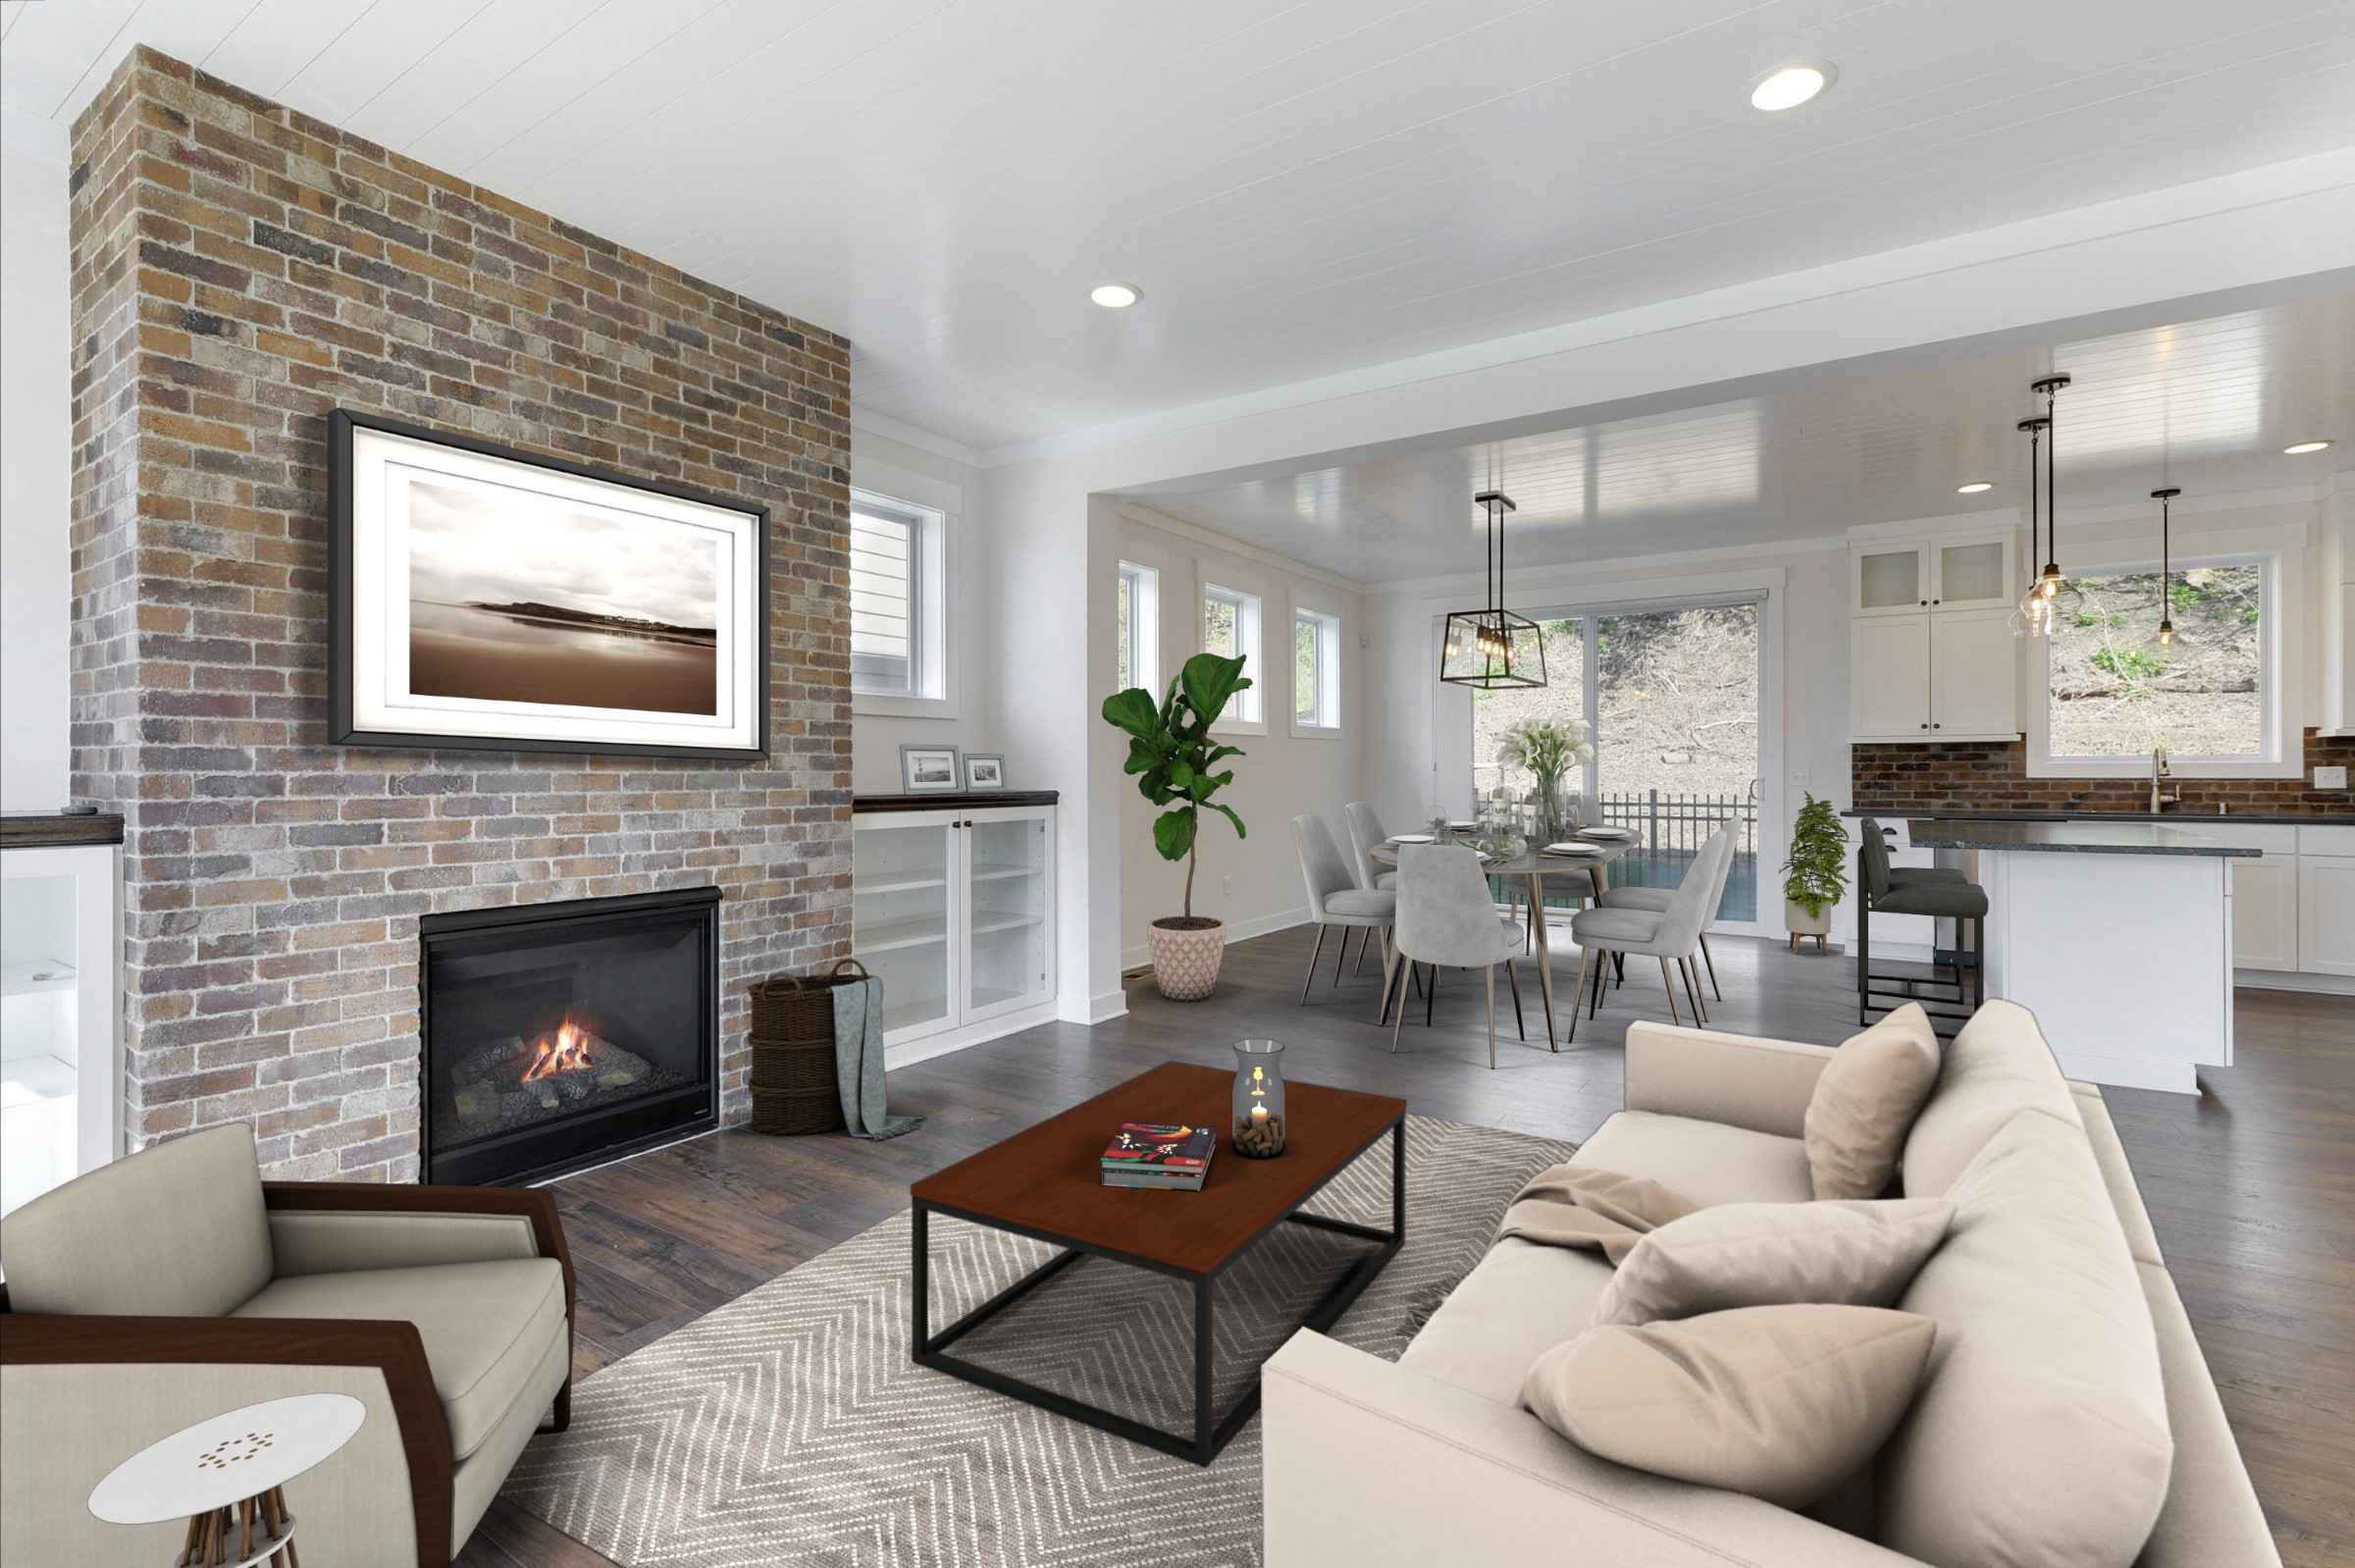 341 Pleasant Ave, St. Paul - Spring (5) - staged (Bold)